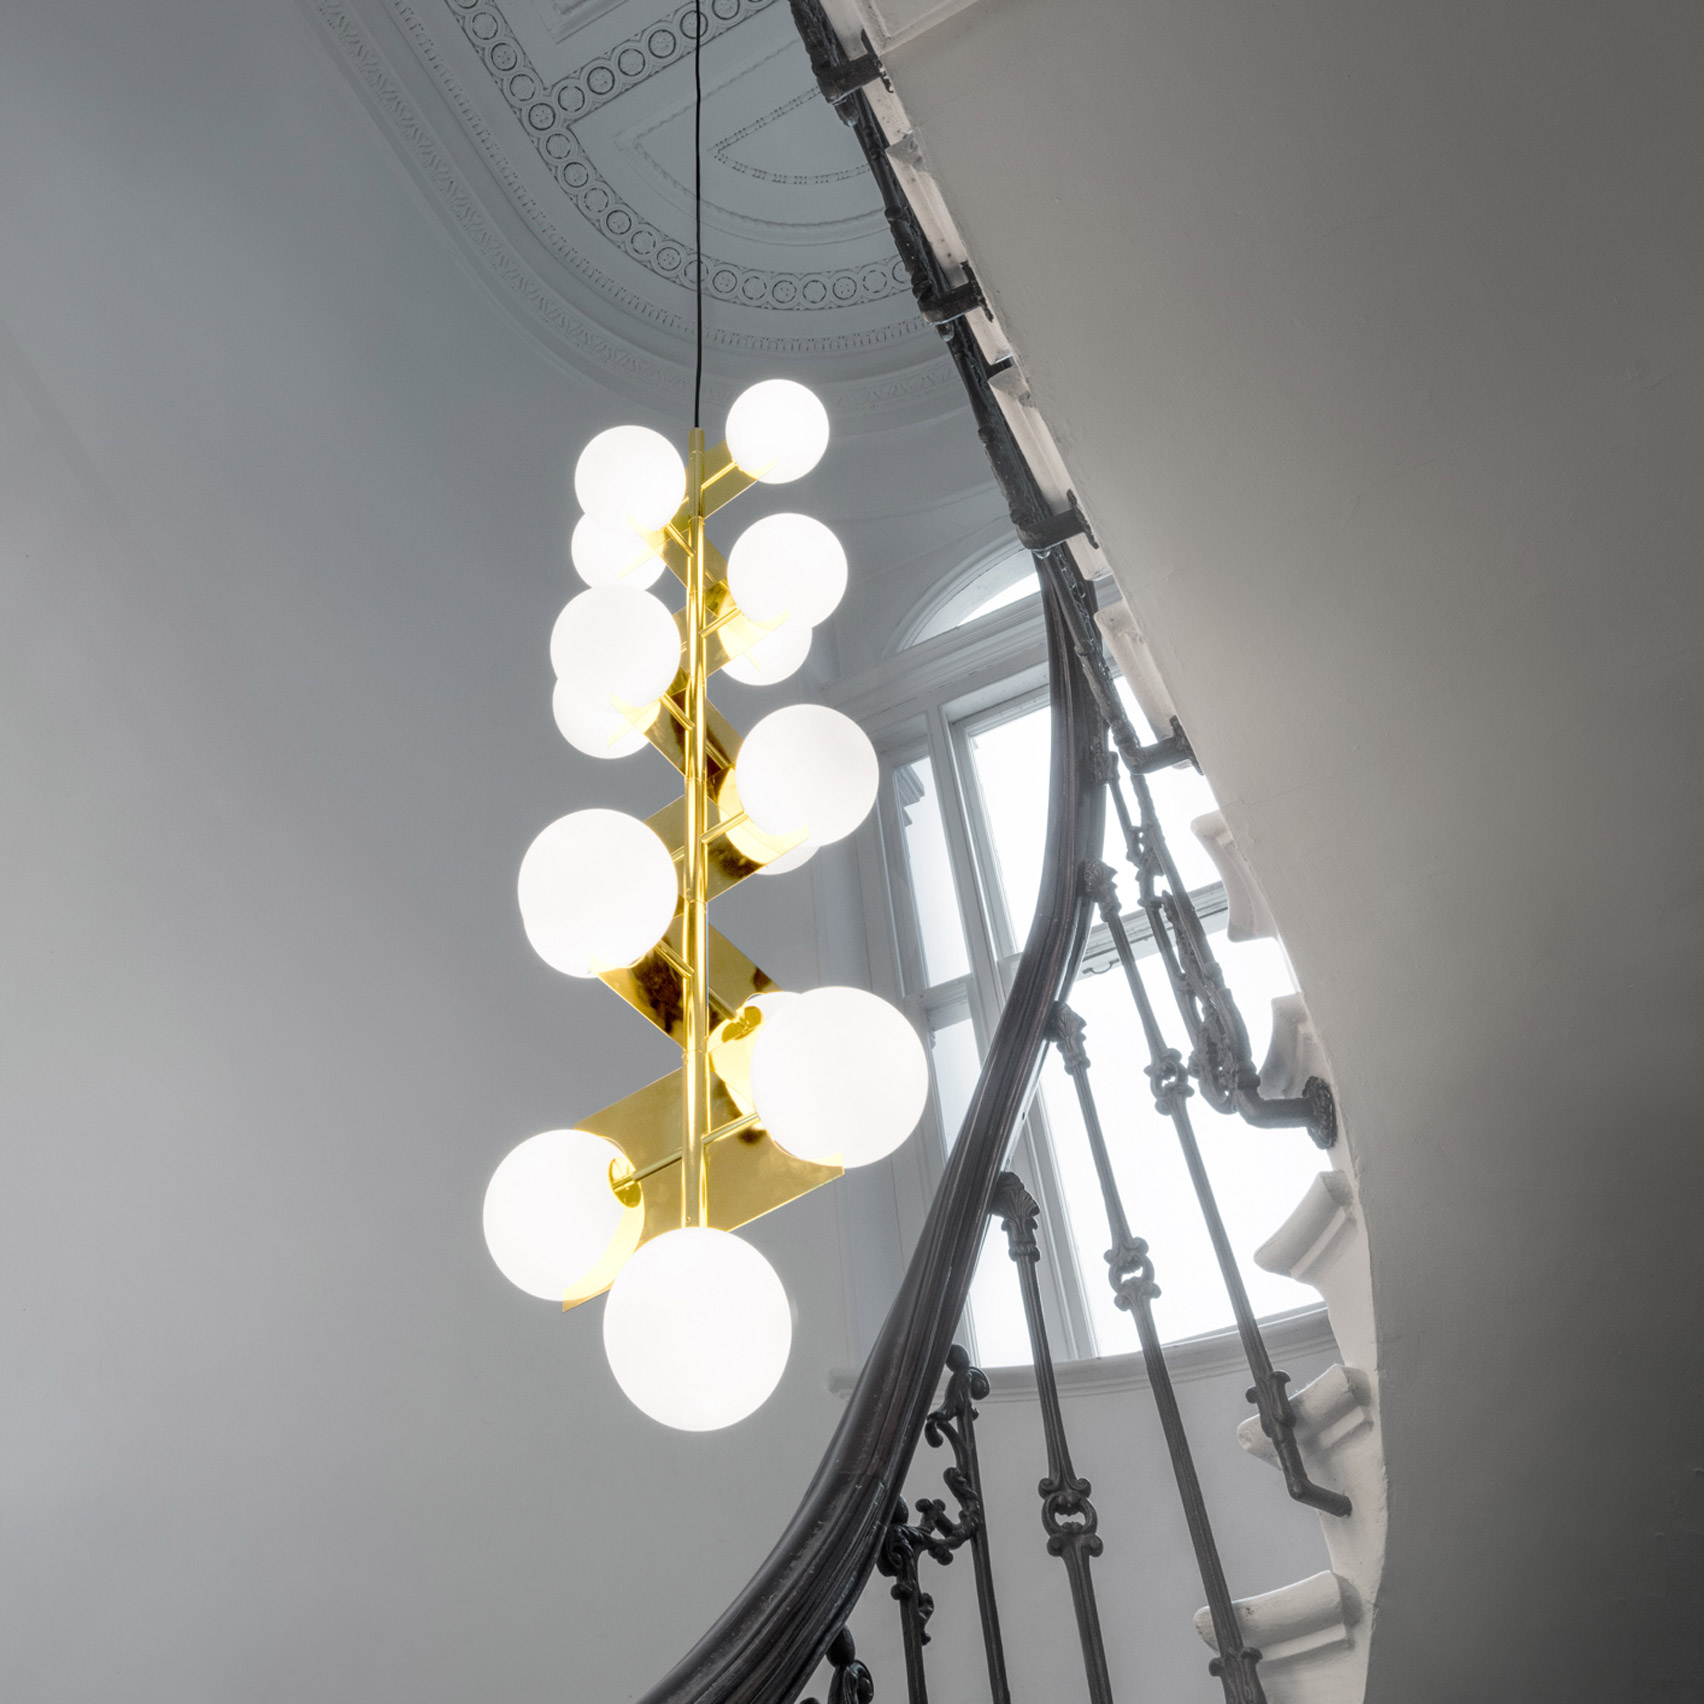 lighting designs. Tom Dixon Launches Two New Lighting Designs At Stockholm Design Week